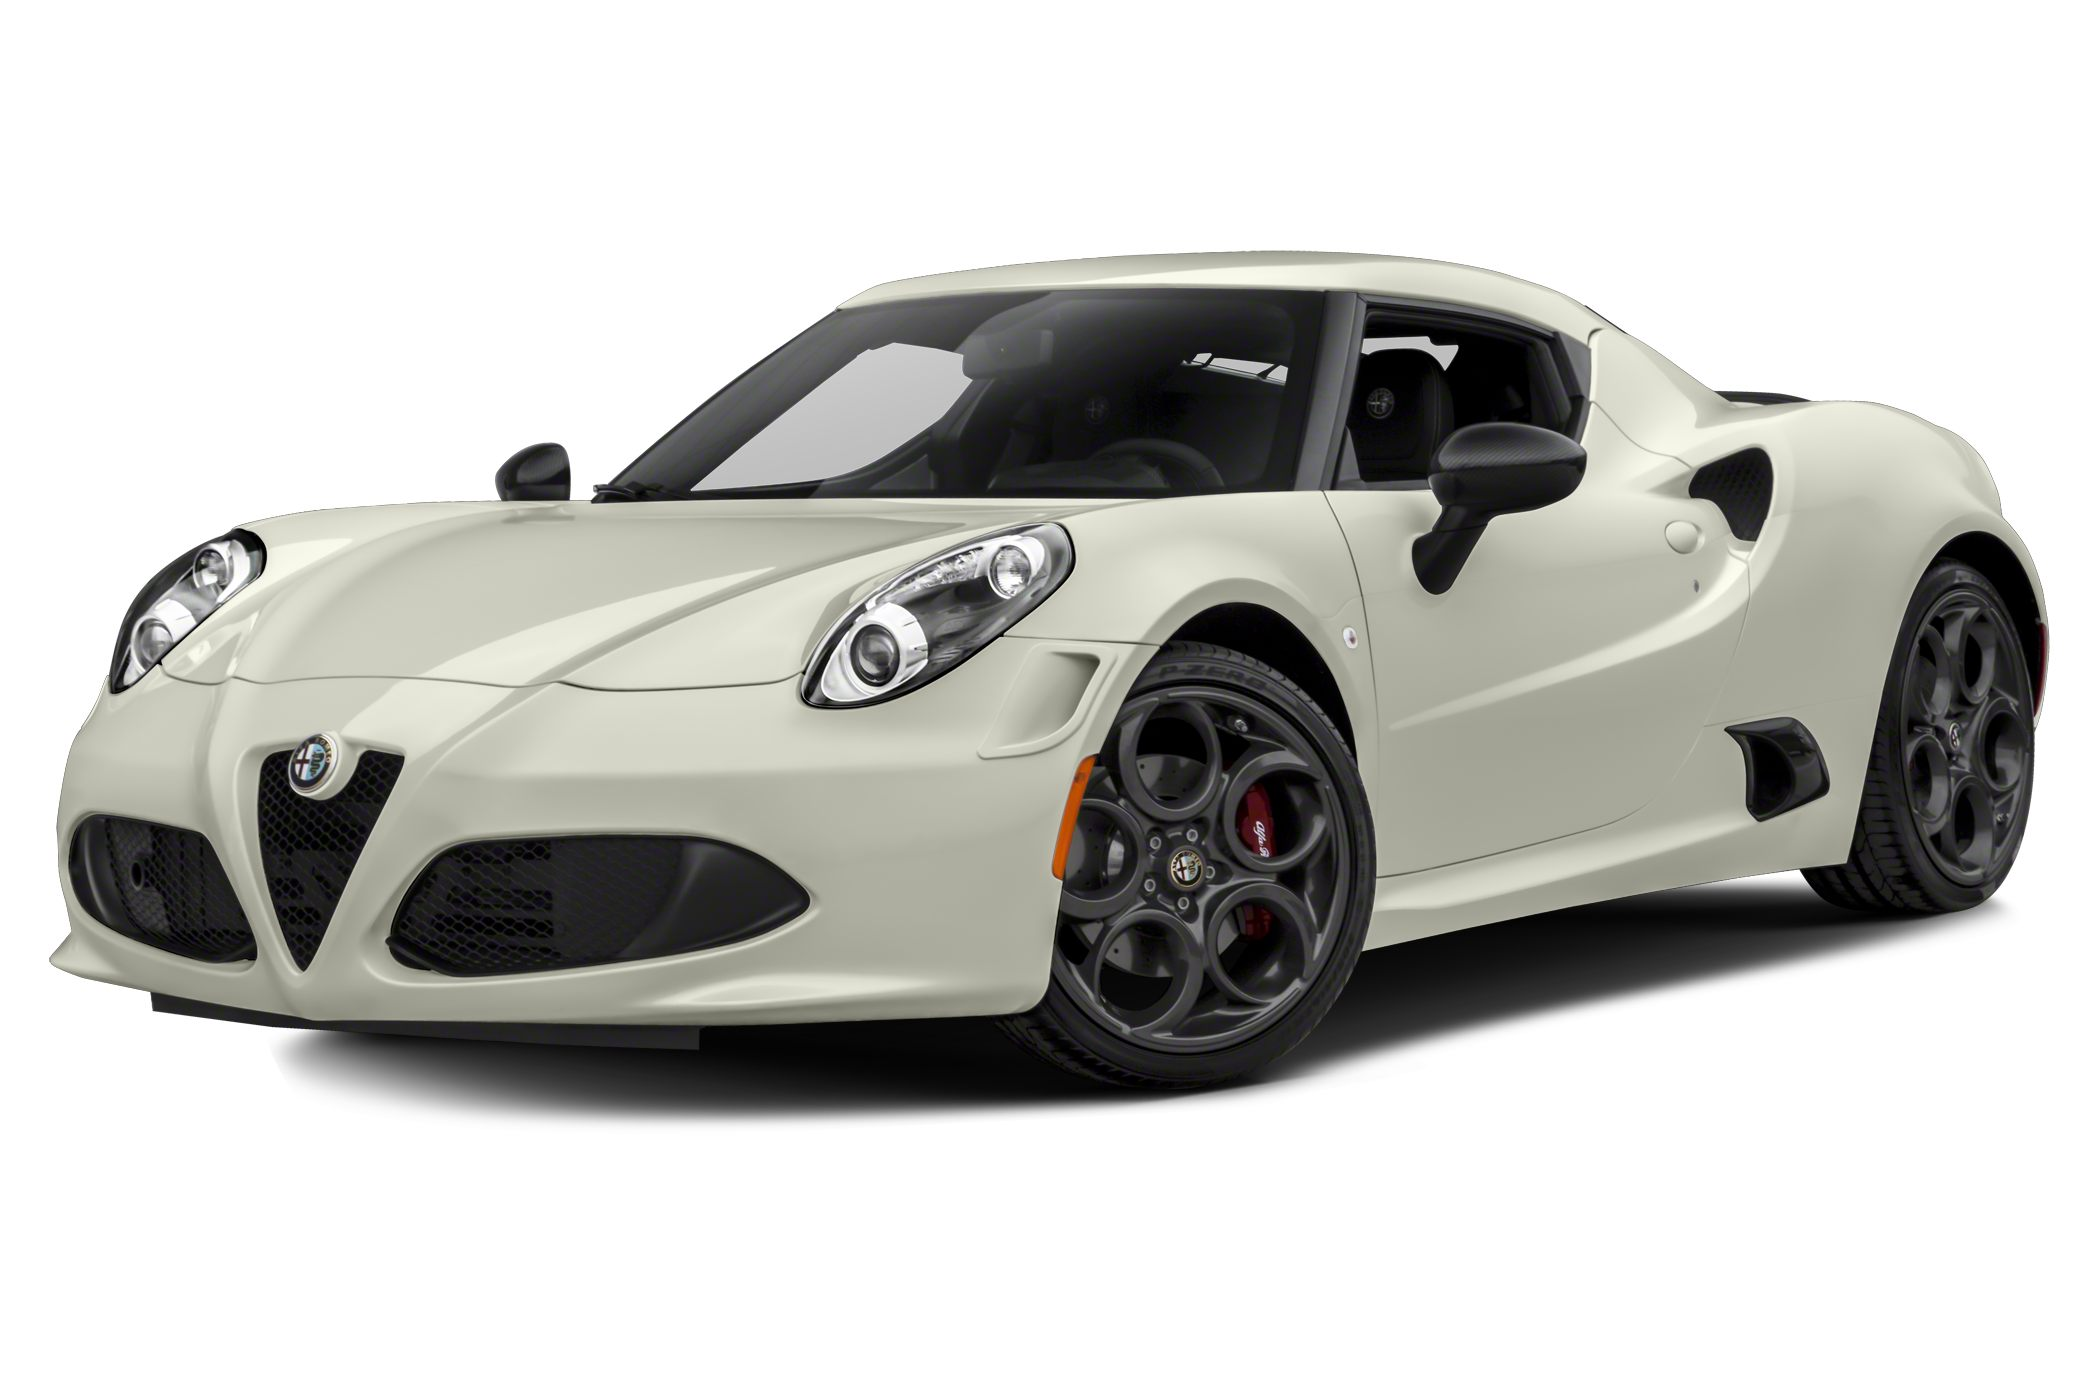 2015 Alfa Romeo 4C Launch Edition Coupe for sale in Evansville for $75,195 with 2 miles.